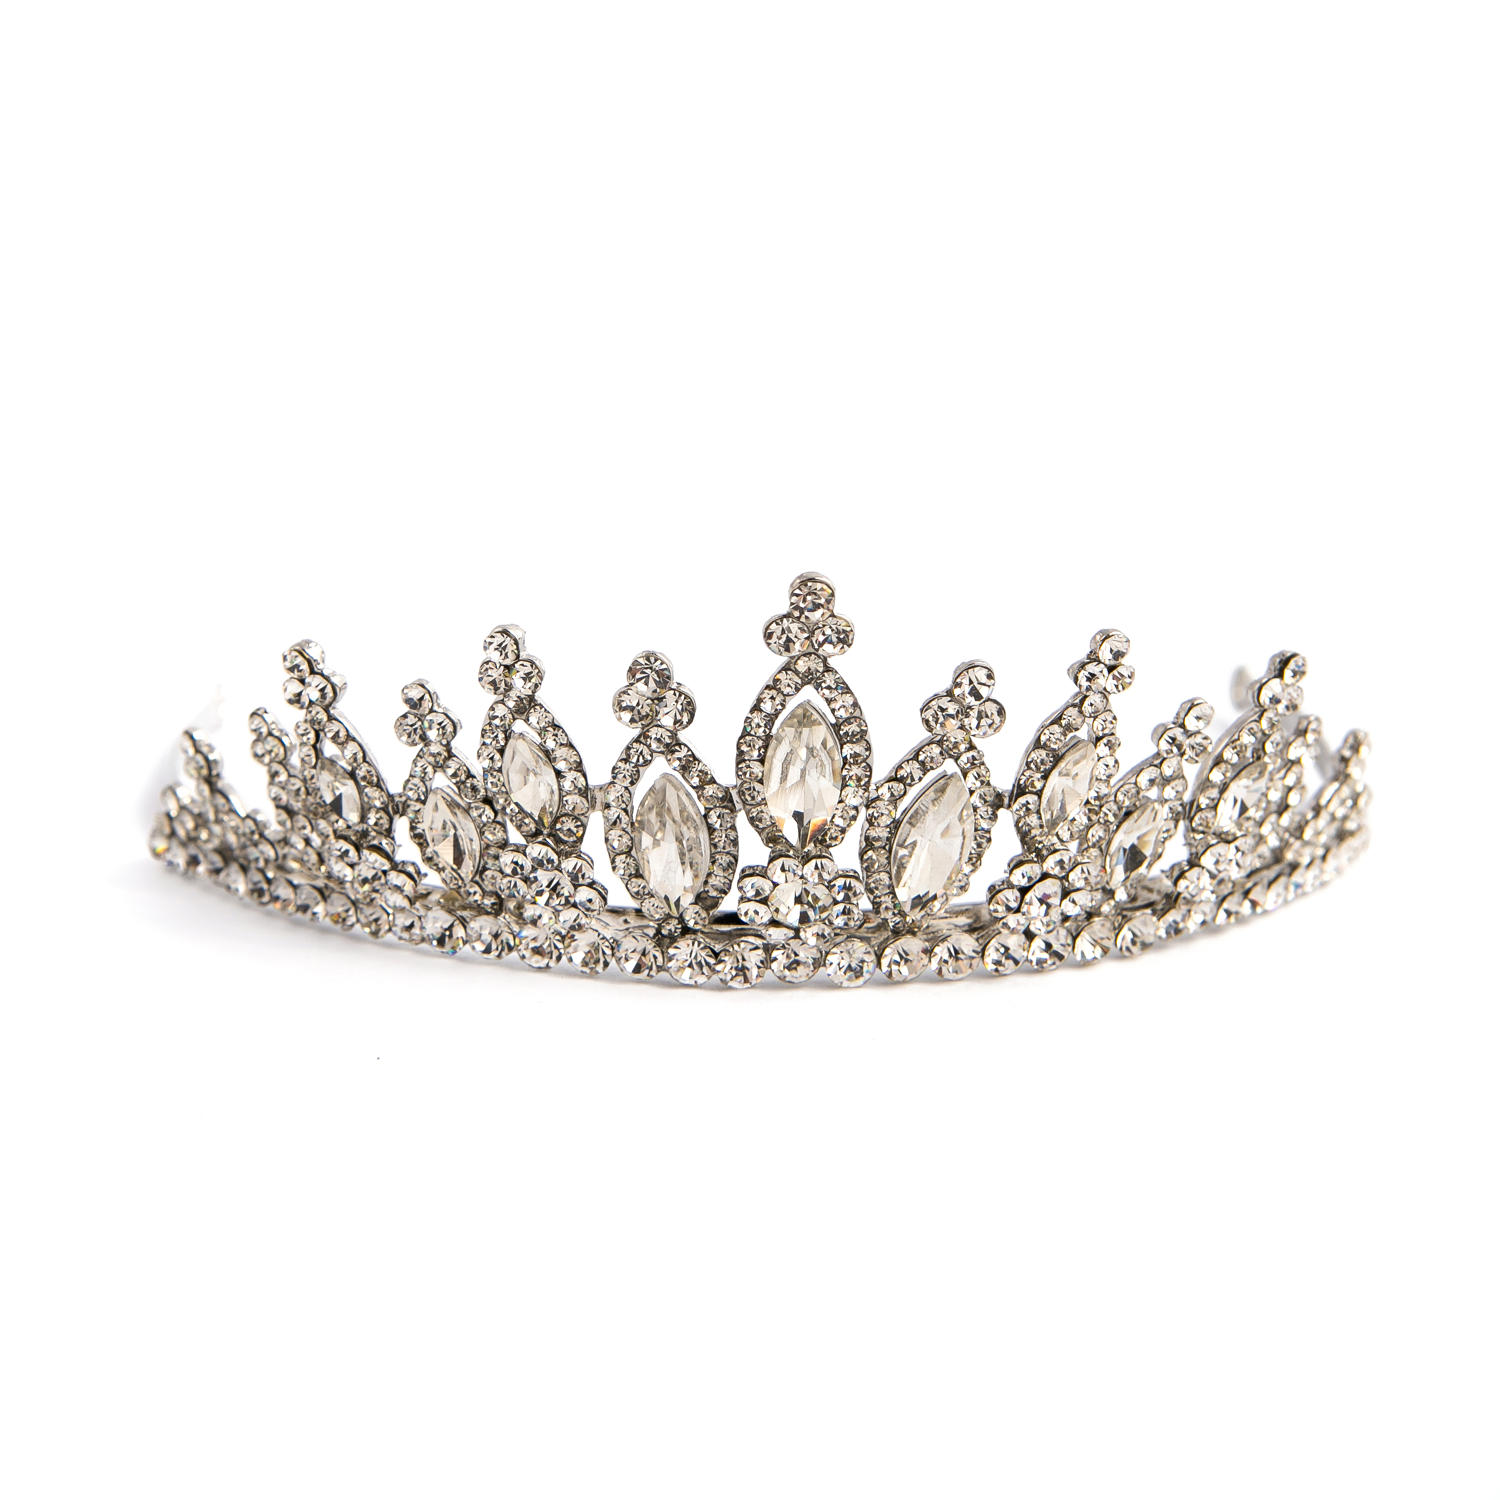 Crystal & Silver Plated Tiara